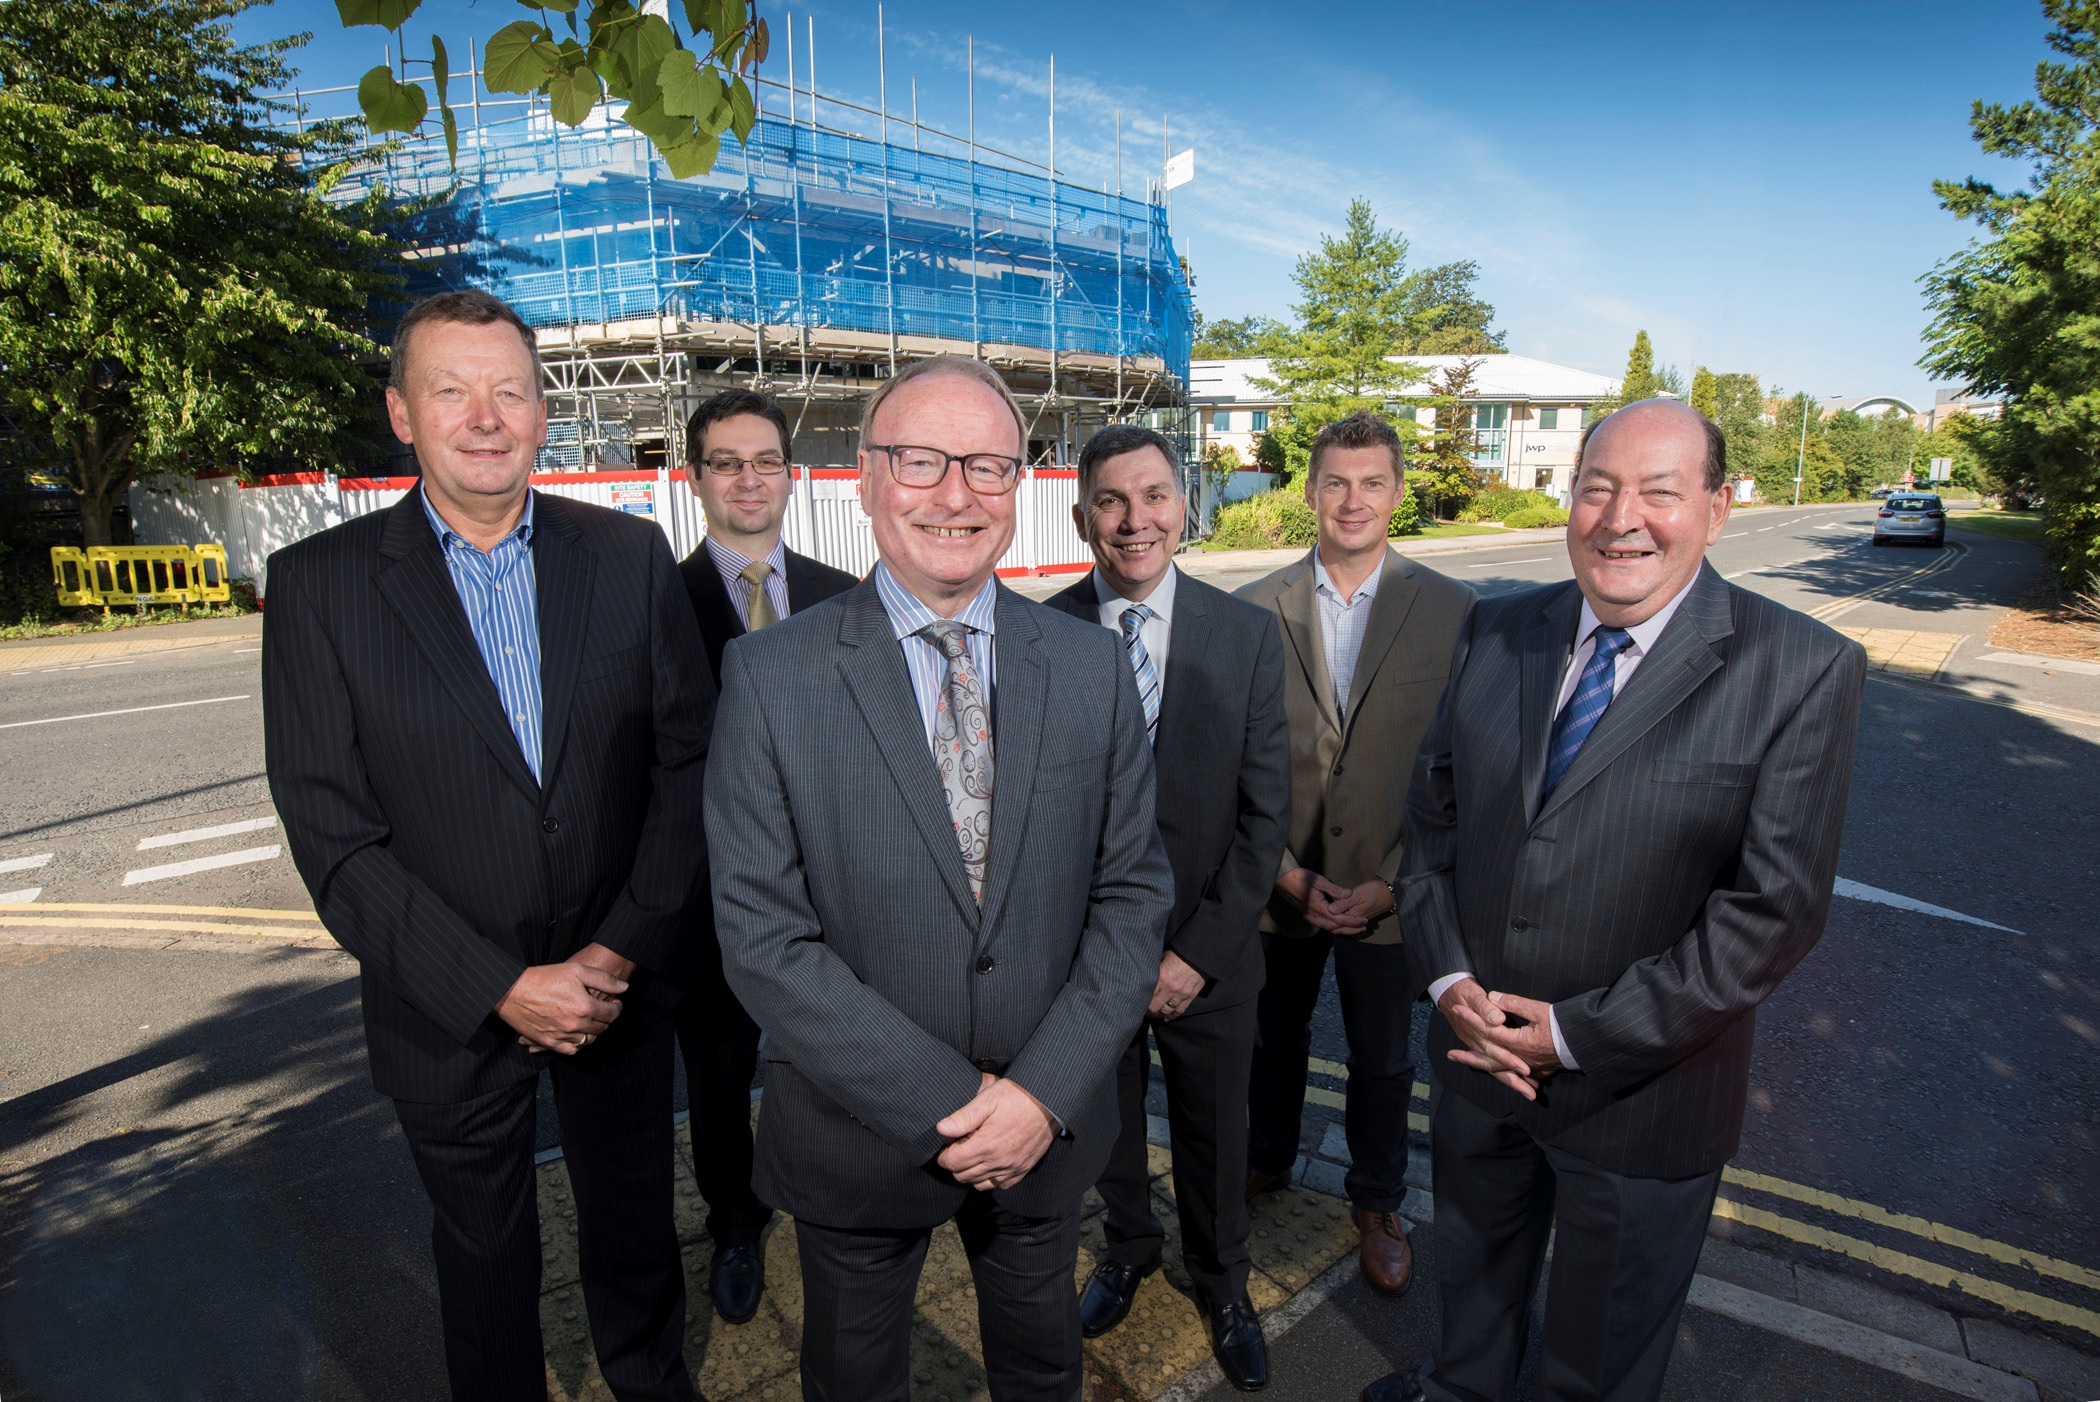 From left: Howard Rogers of Appledorn Developments, Nick Scott of Andrew Jackson Solicitors, Tony Farmer of JWPCreers,  Brian de Vere of Yorkshire Bank, Paul Hughes of Appledorn and Maple Court developer Tony Gray.